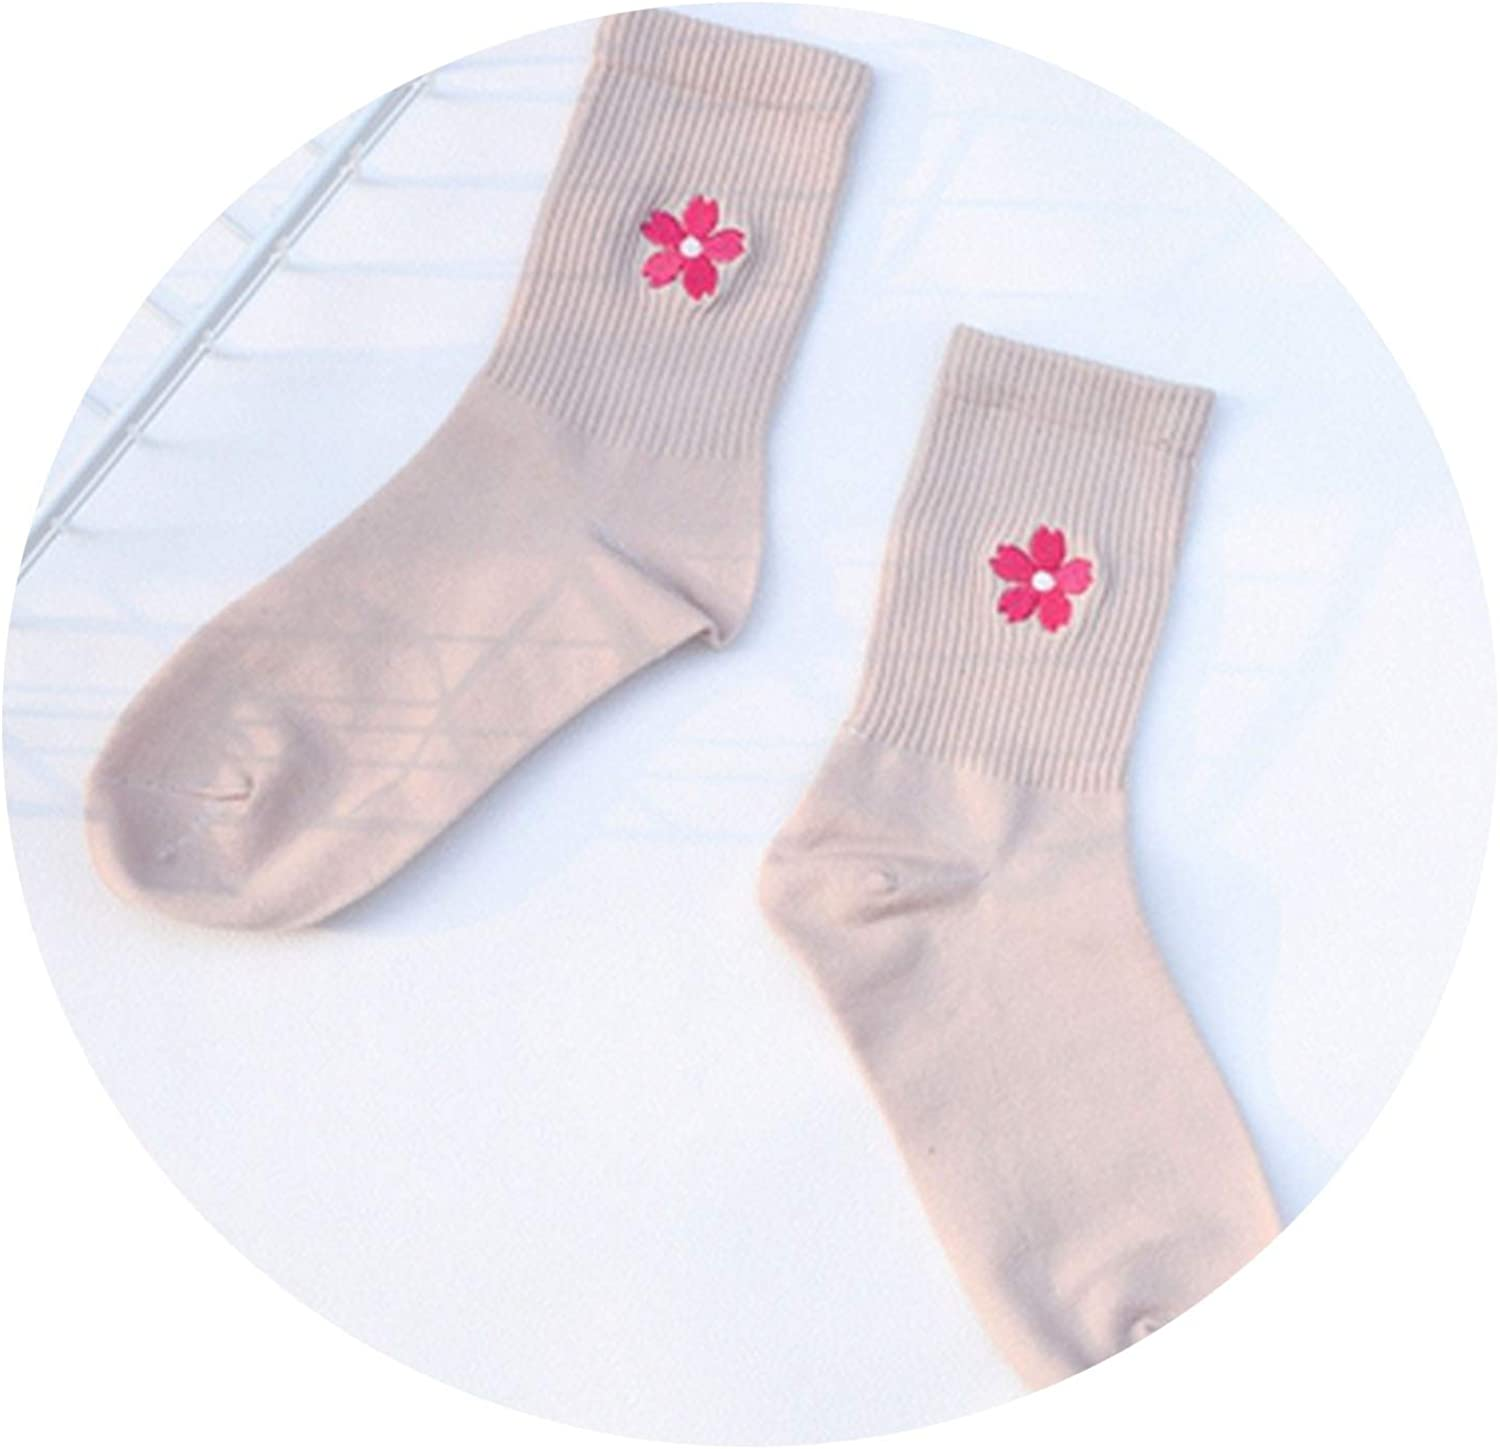 Cherry Blossom Embroidery Cotton Women Socks Sakura Flower Socks Summer Cute Soft Cozy Sock